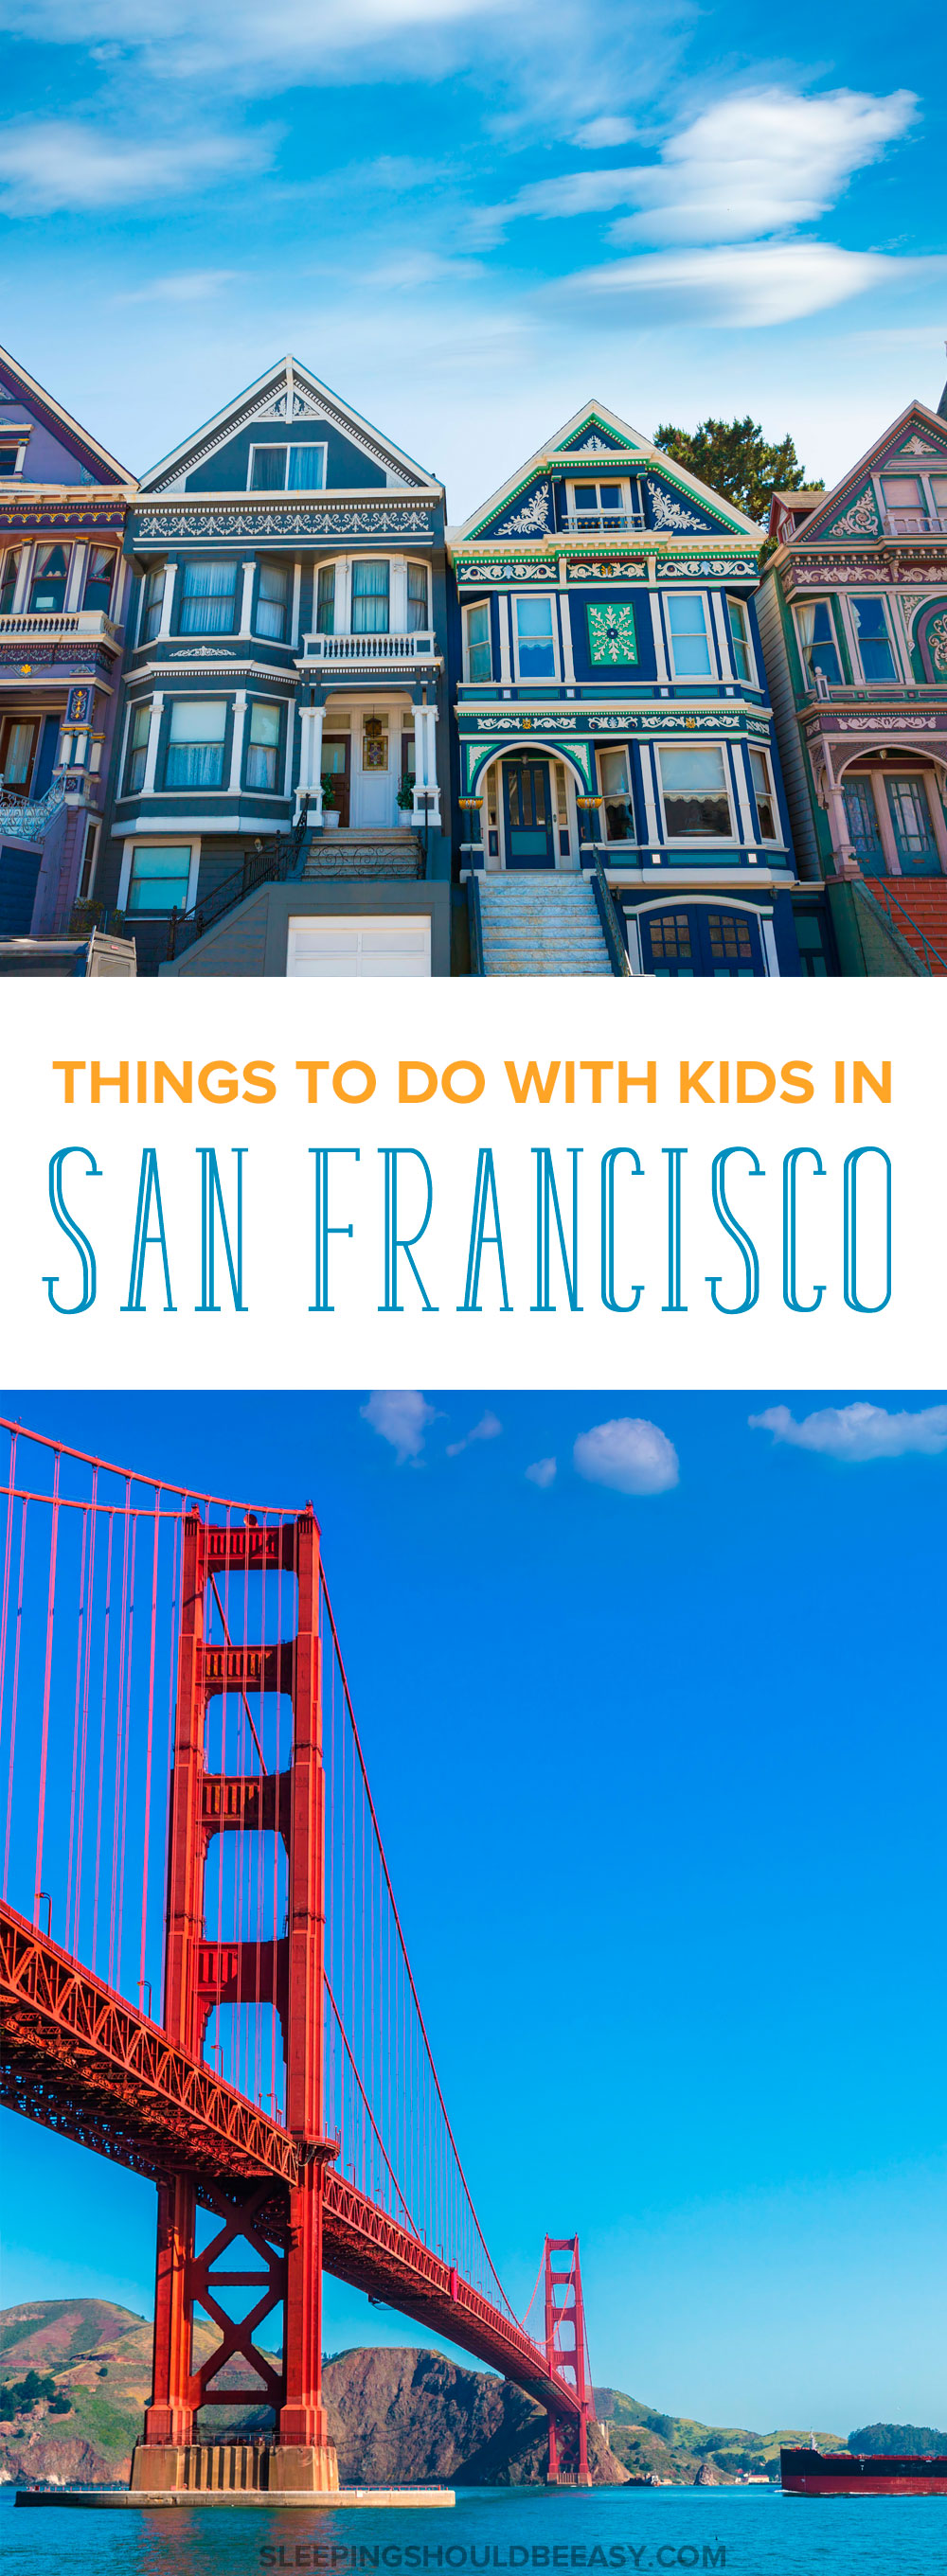 Looking for realistic things to do in San Francisco with kids? Traveling with children is hard. Here are places to visit in San Francisco, even with kids.